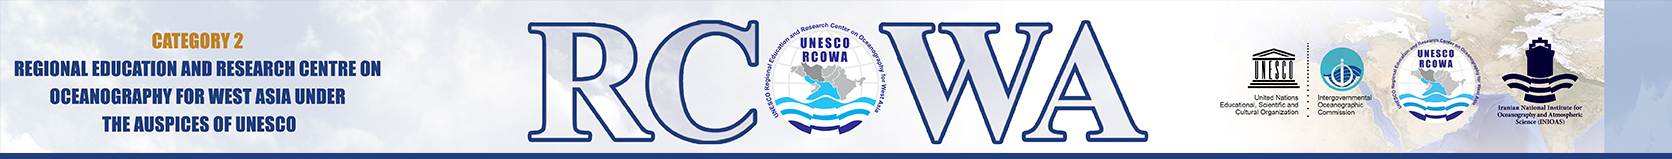 Second International Conference on Oceanography for West Asia